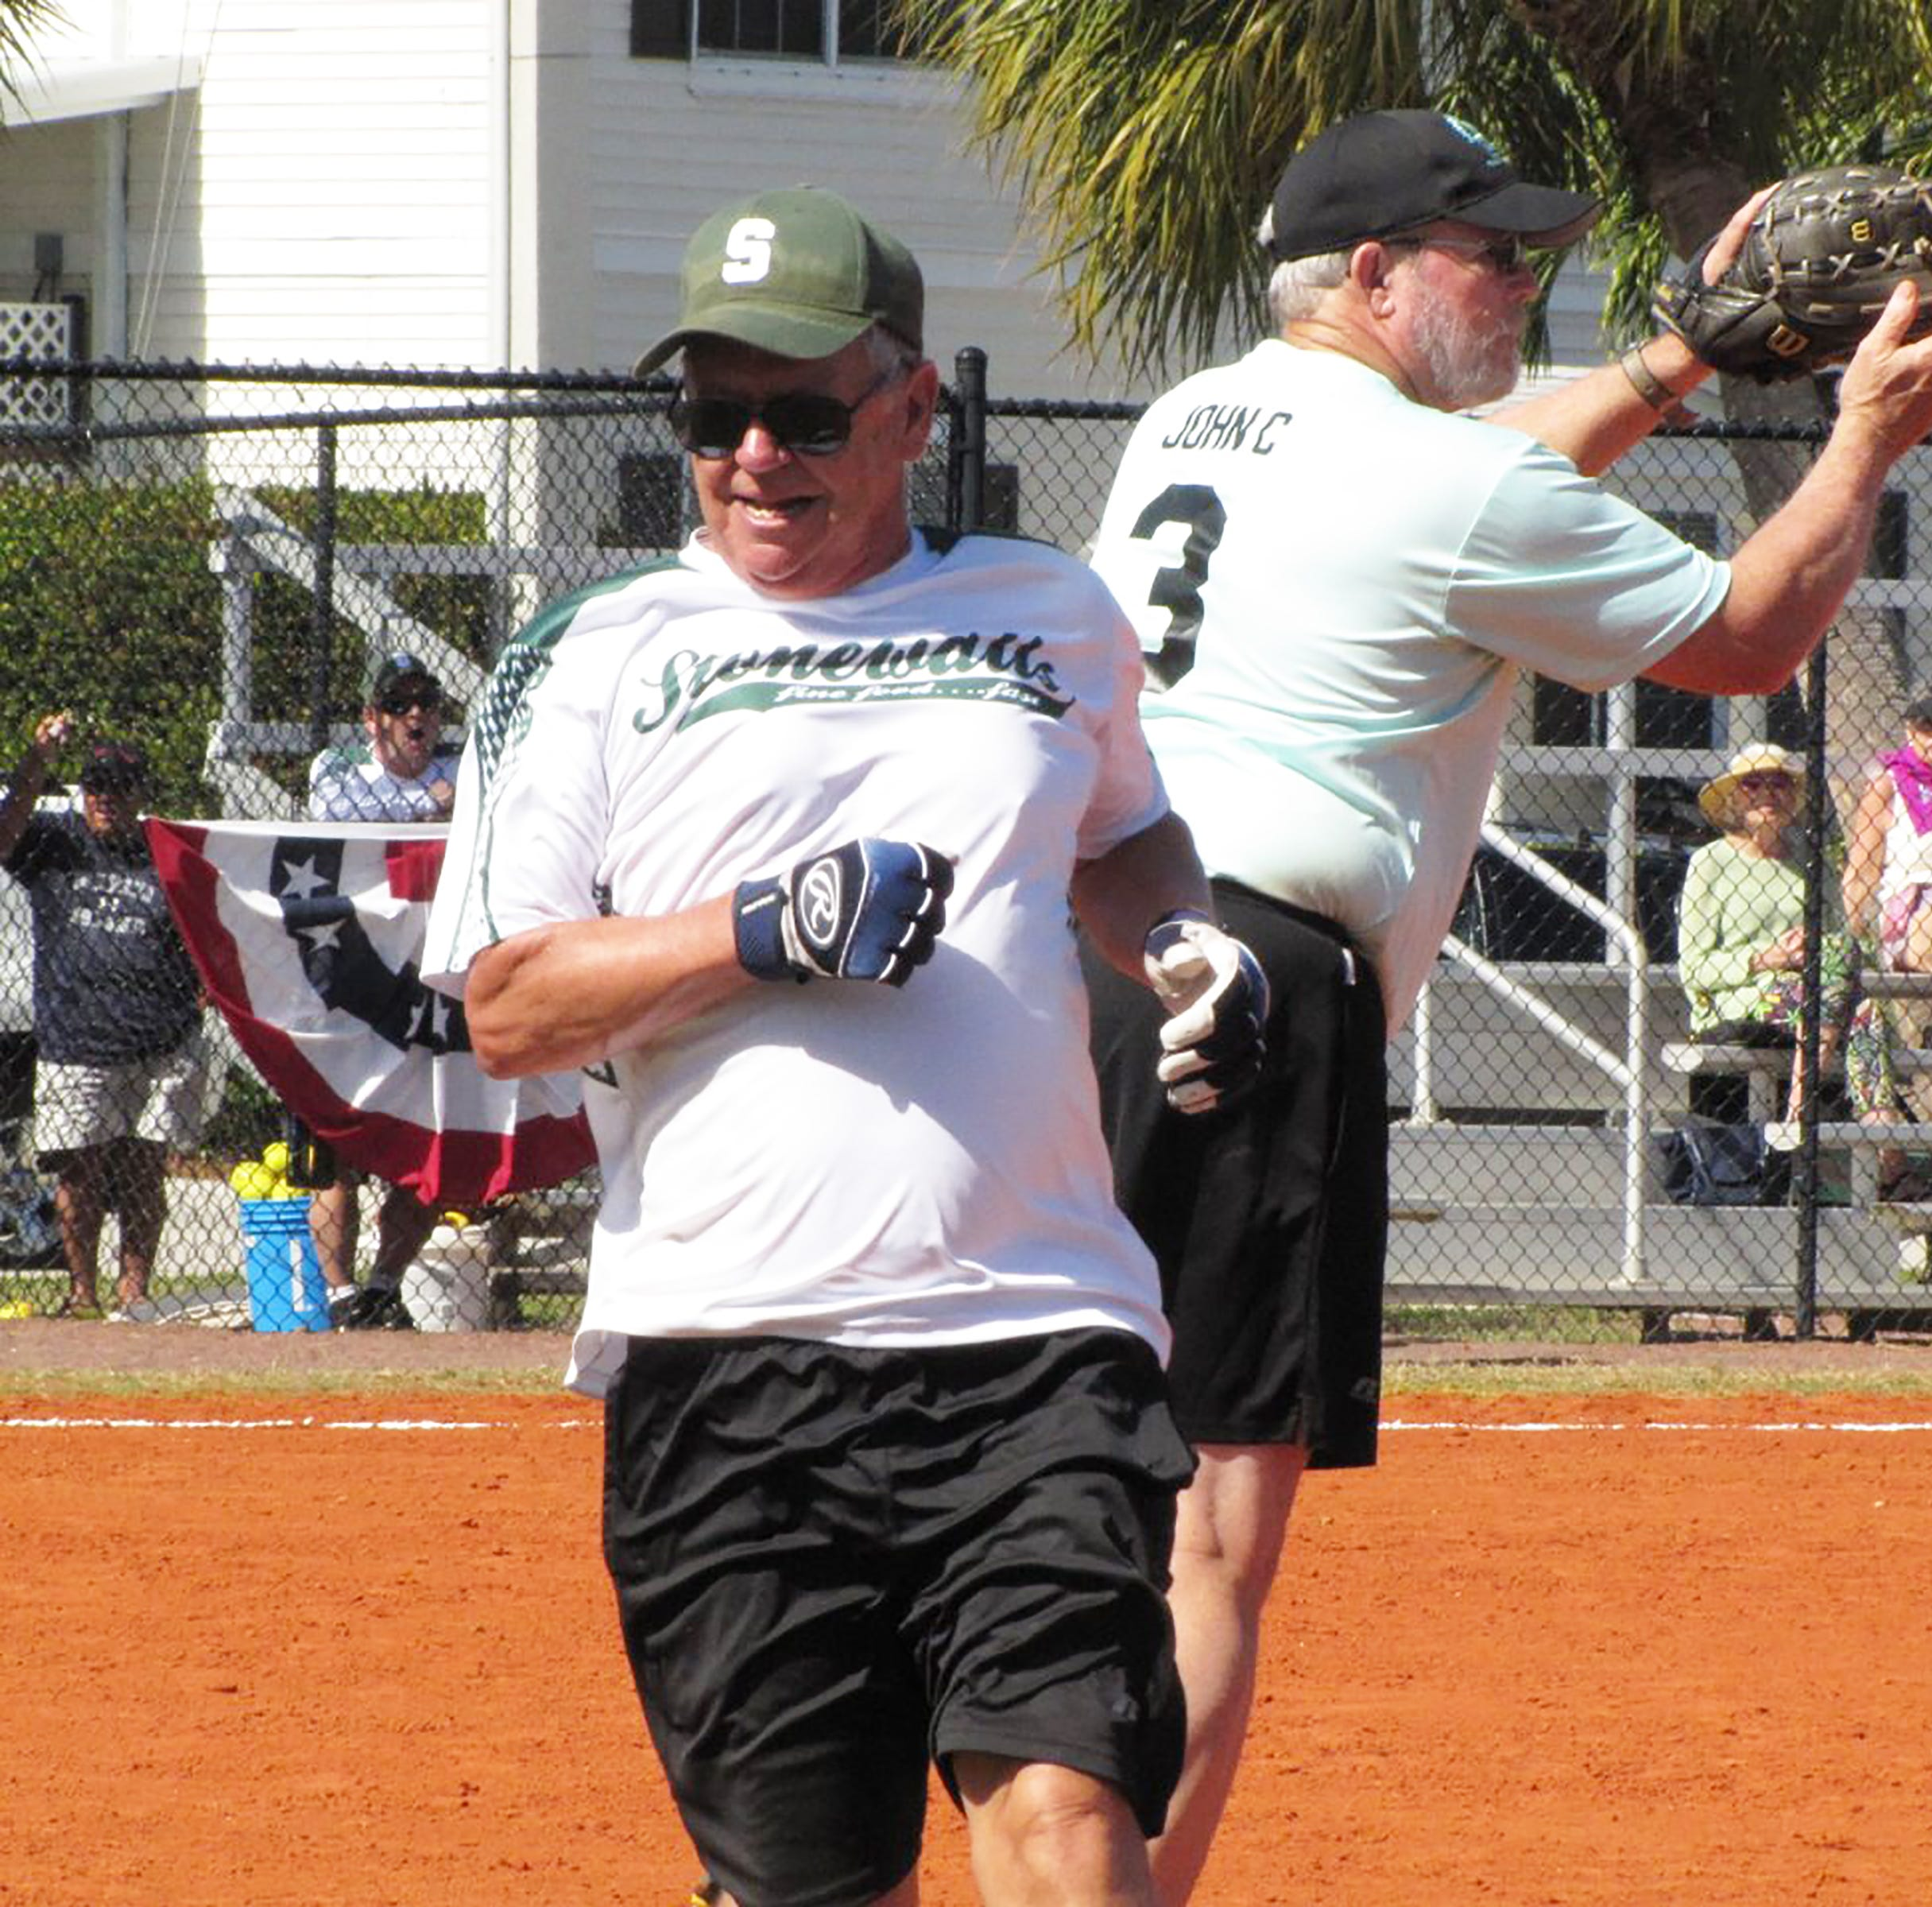 Senior Softball: Da Vinci's continues to roll